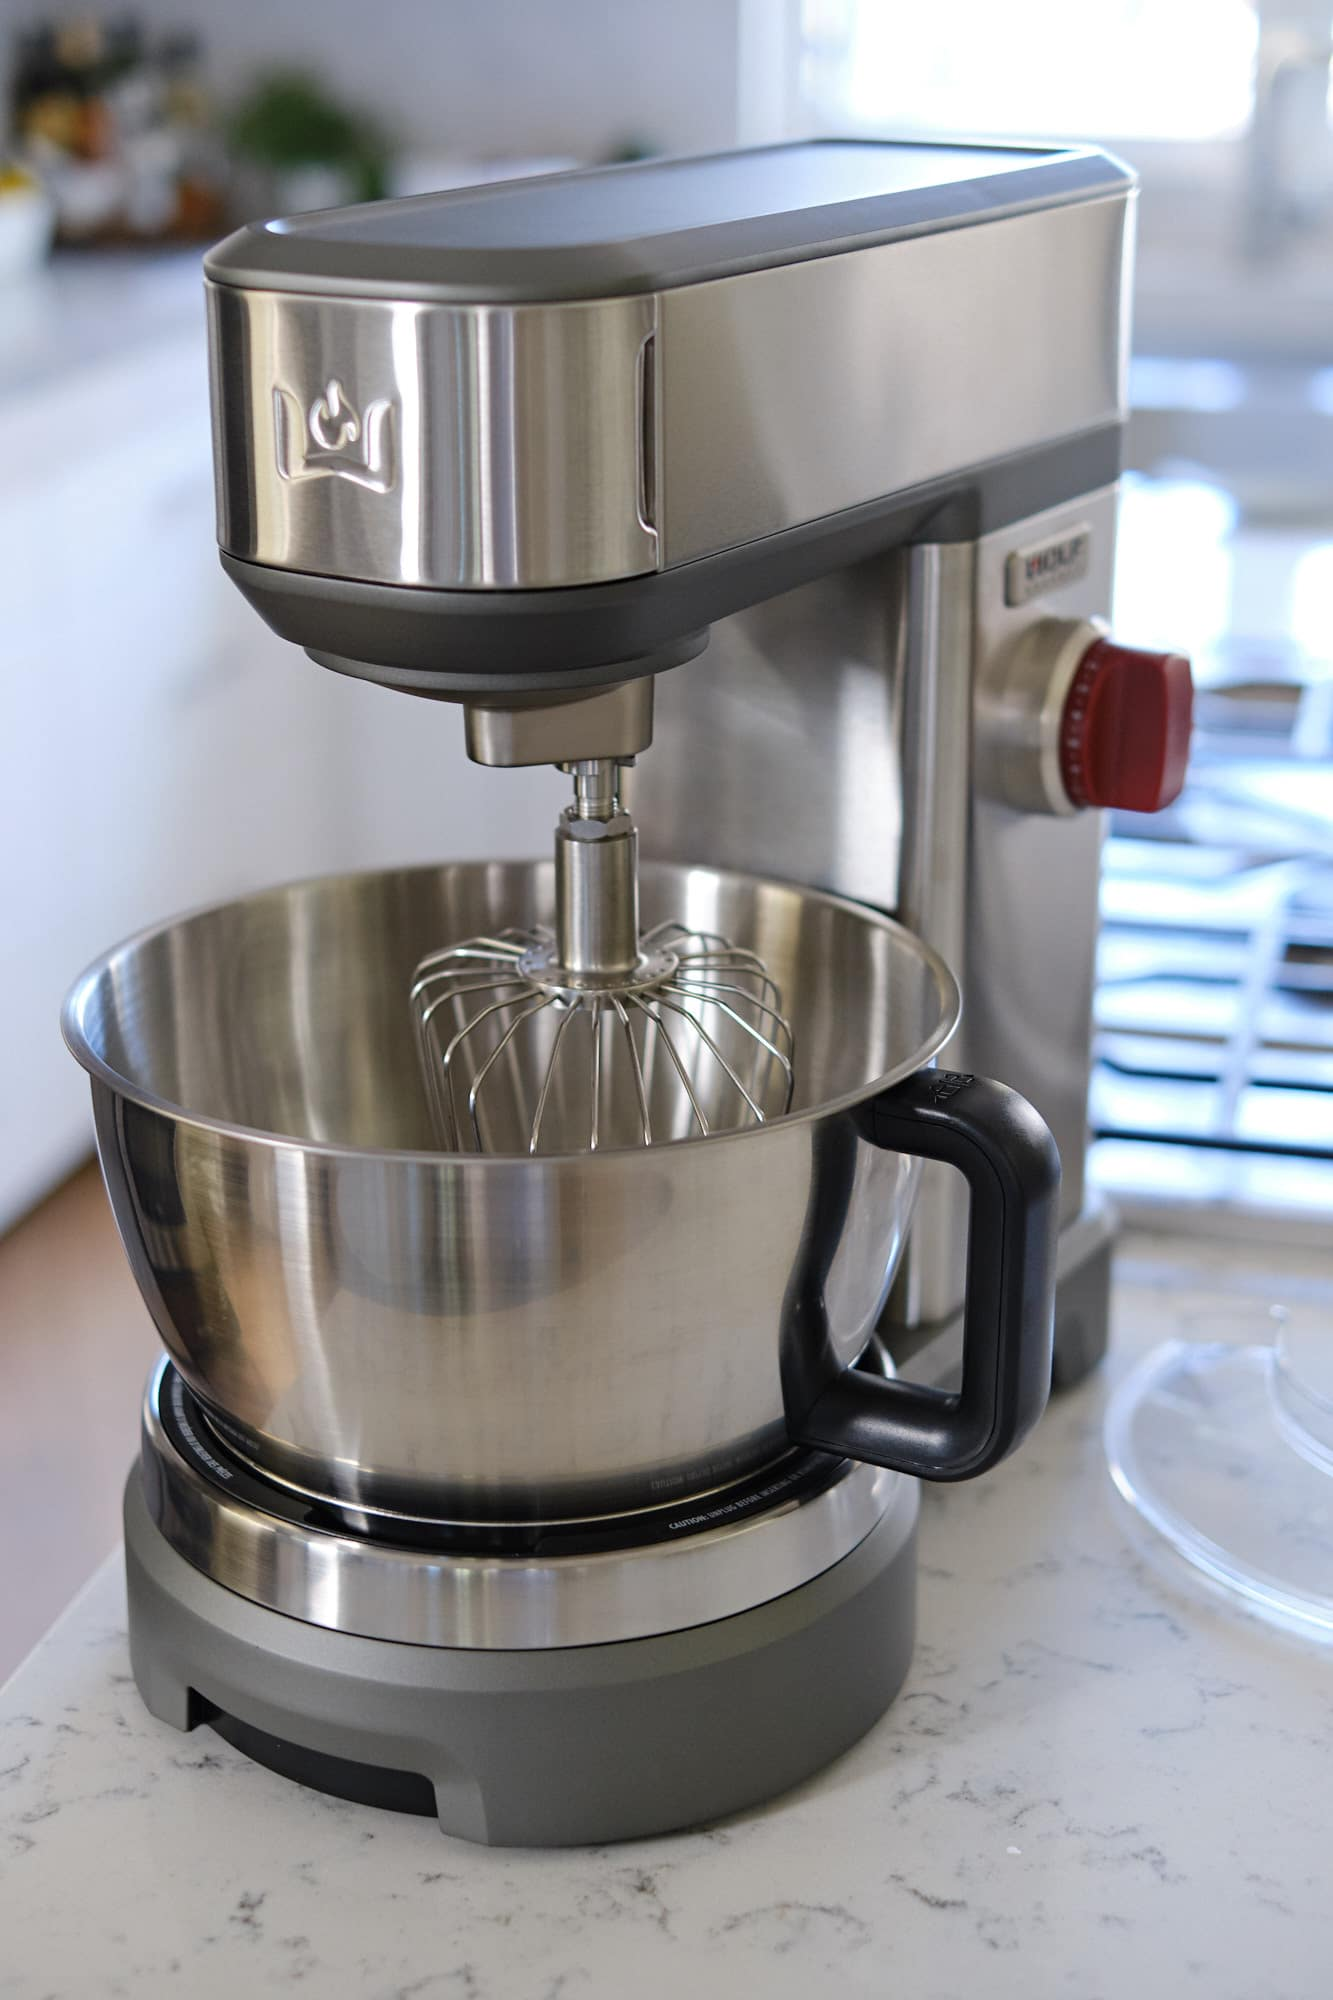 Wolf stand mixer on countertop